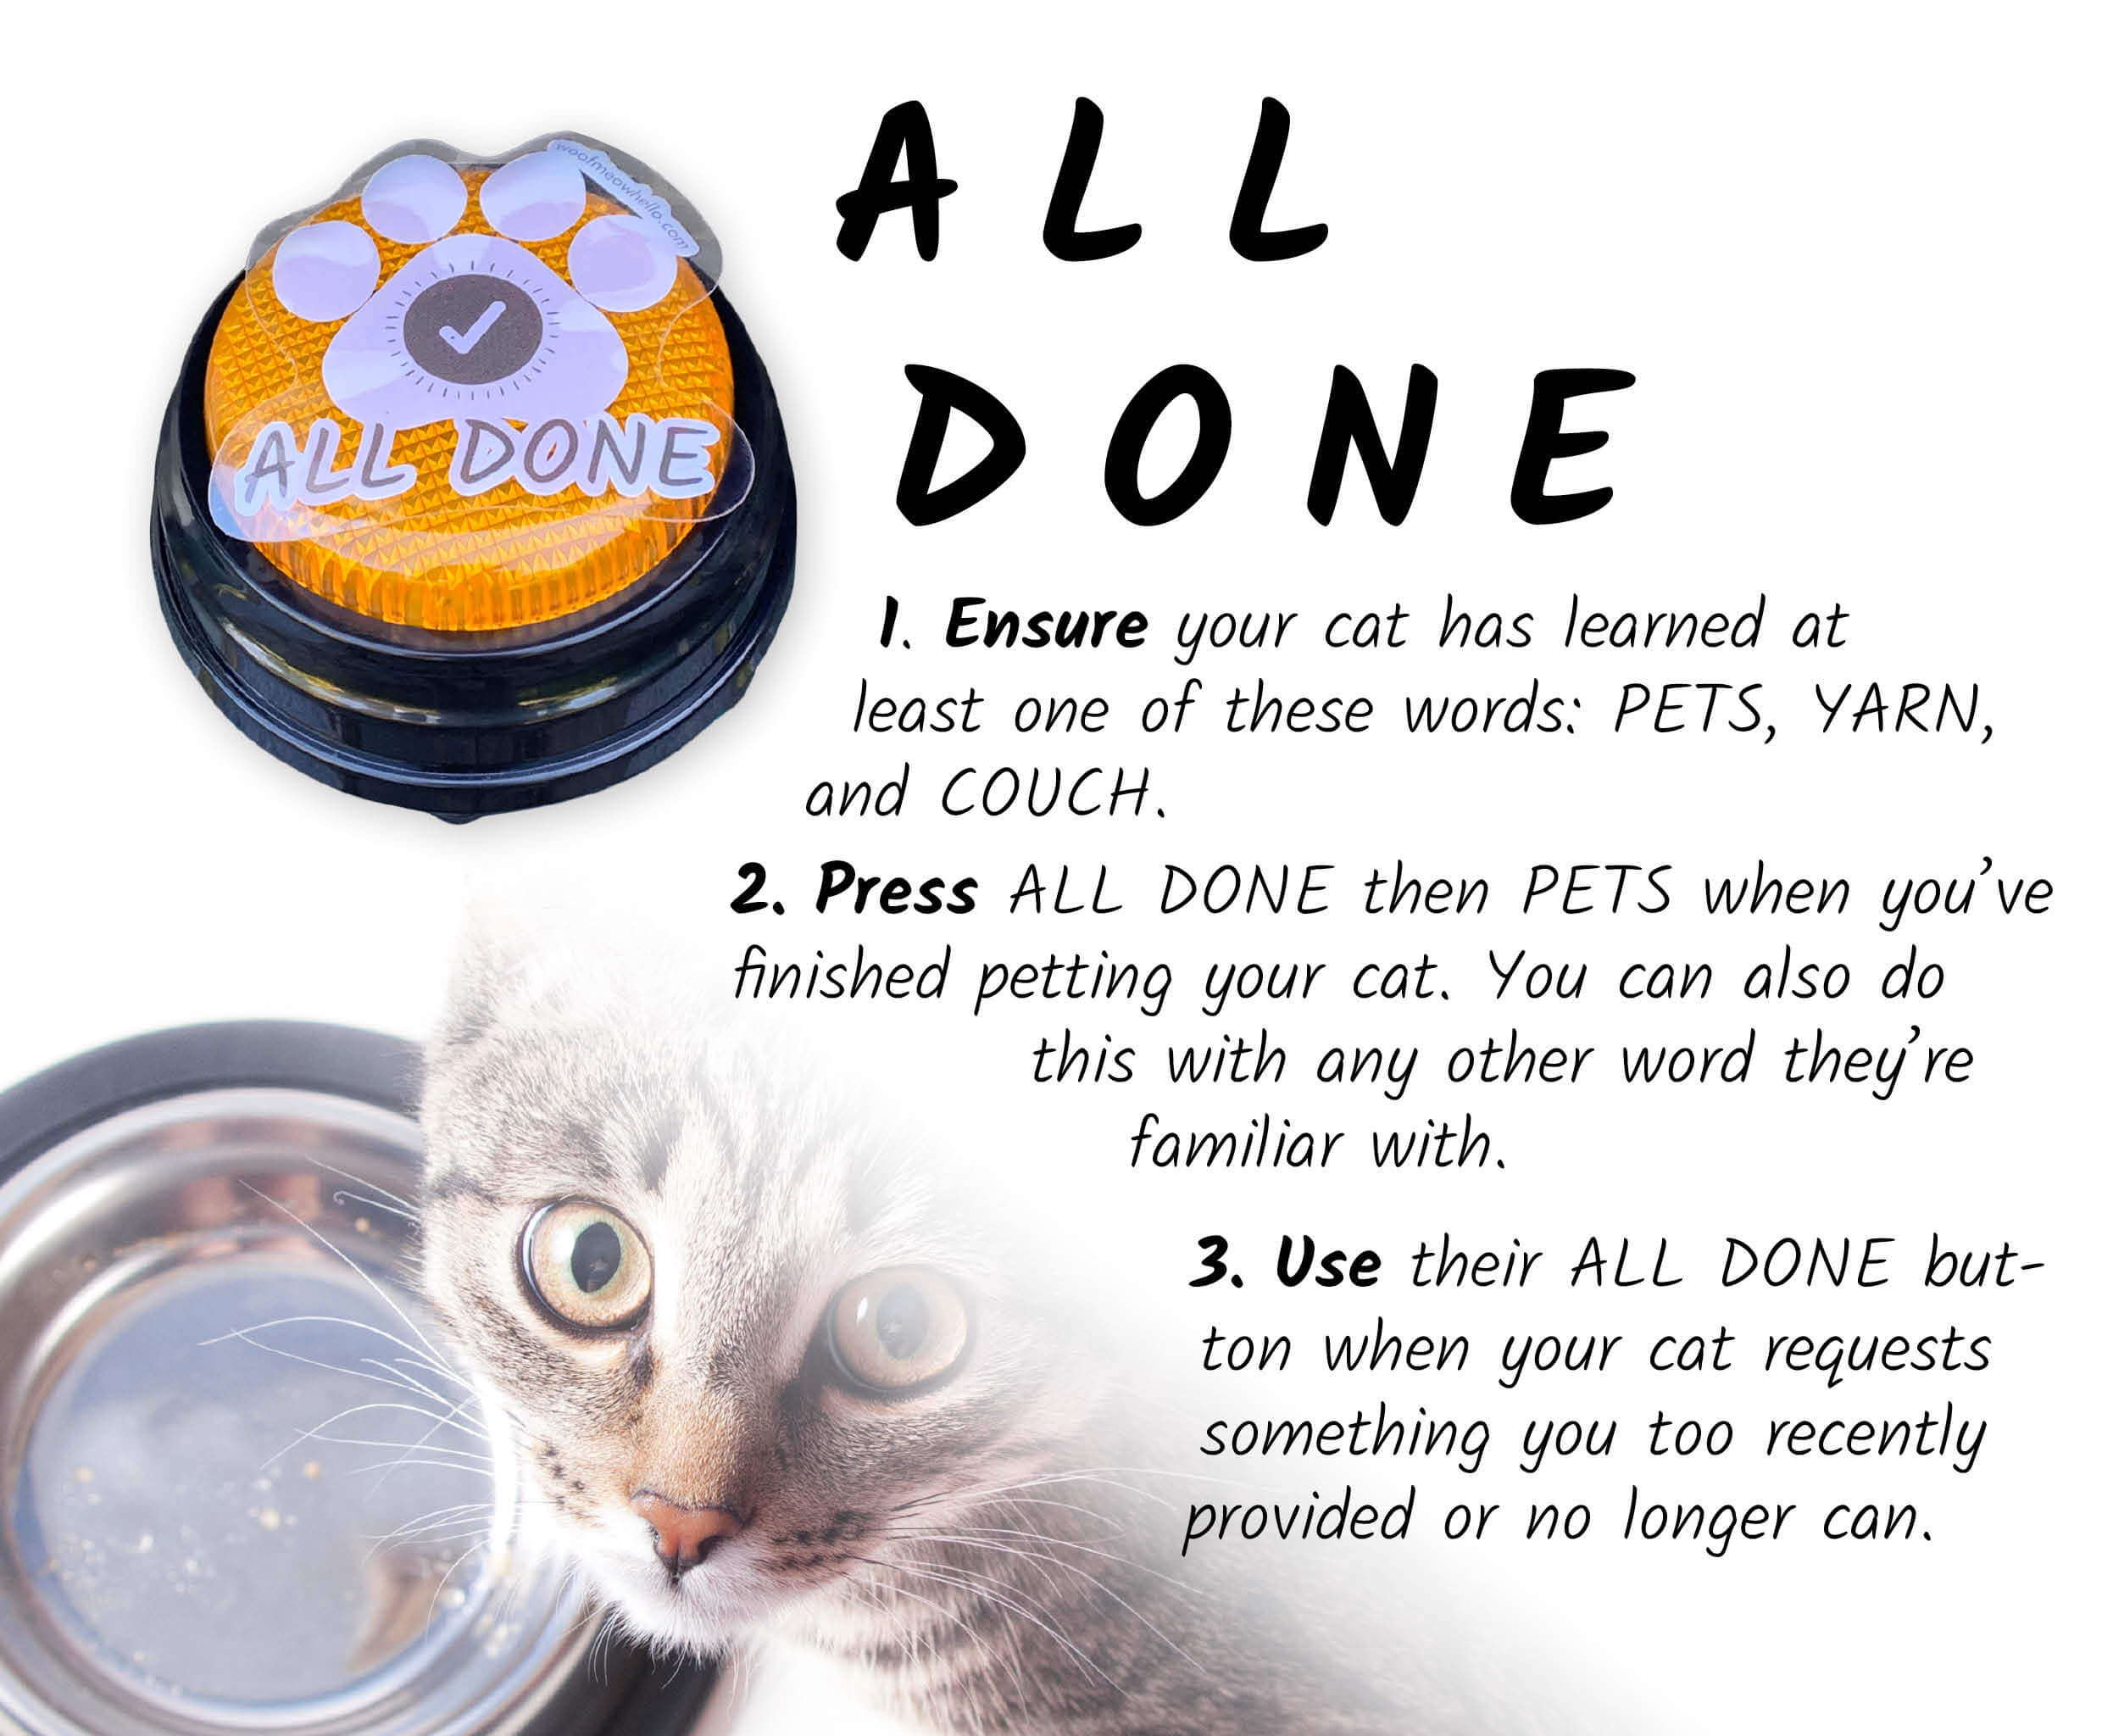 Image of a speech button for cats with an ALL DONE sticker label. Below is a cat with an empty food bowl looking up at you. Before training your cat to say ALL DONE, first ensure they have learned at least one of these words: PETS, YARN, and COUCH. To begin, start pressing ALL DONE then PETS whenever you finish petting your cat. You can also do this with any other word they're familiar with. Use their ALL DONE button when your cat requests something you too recently provided or no longer can.